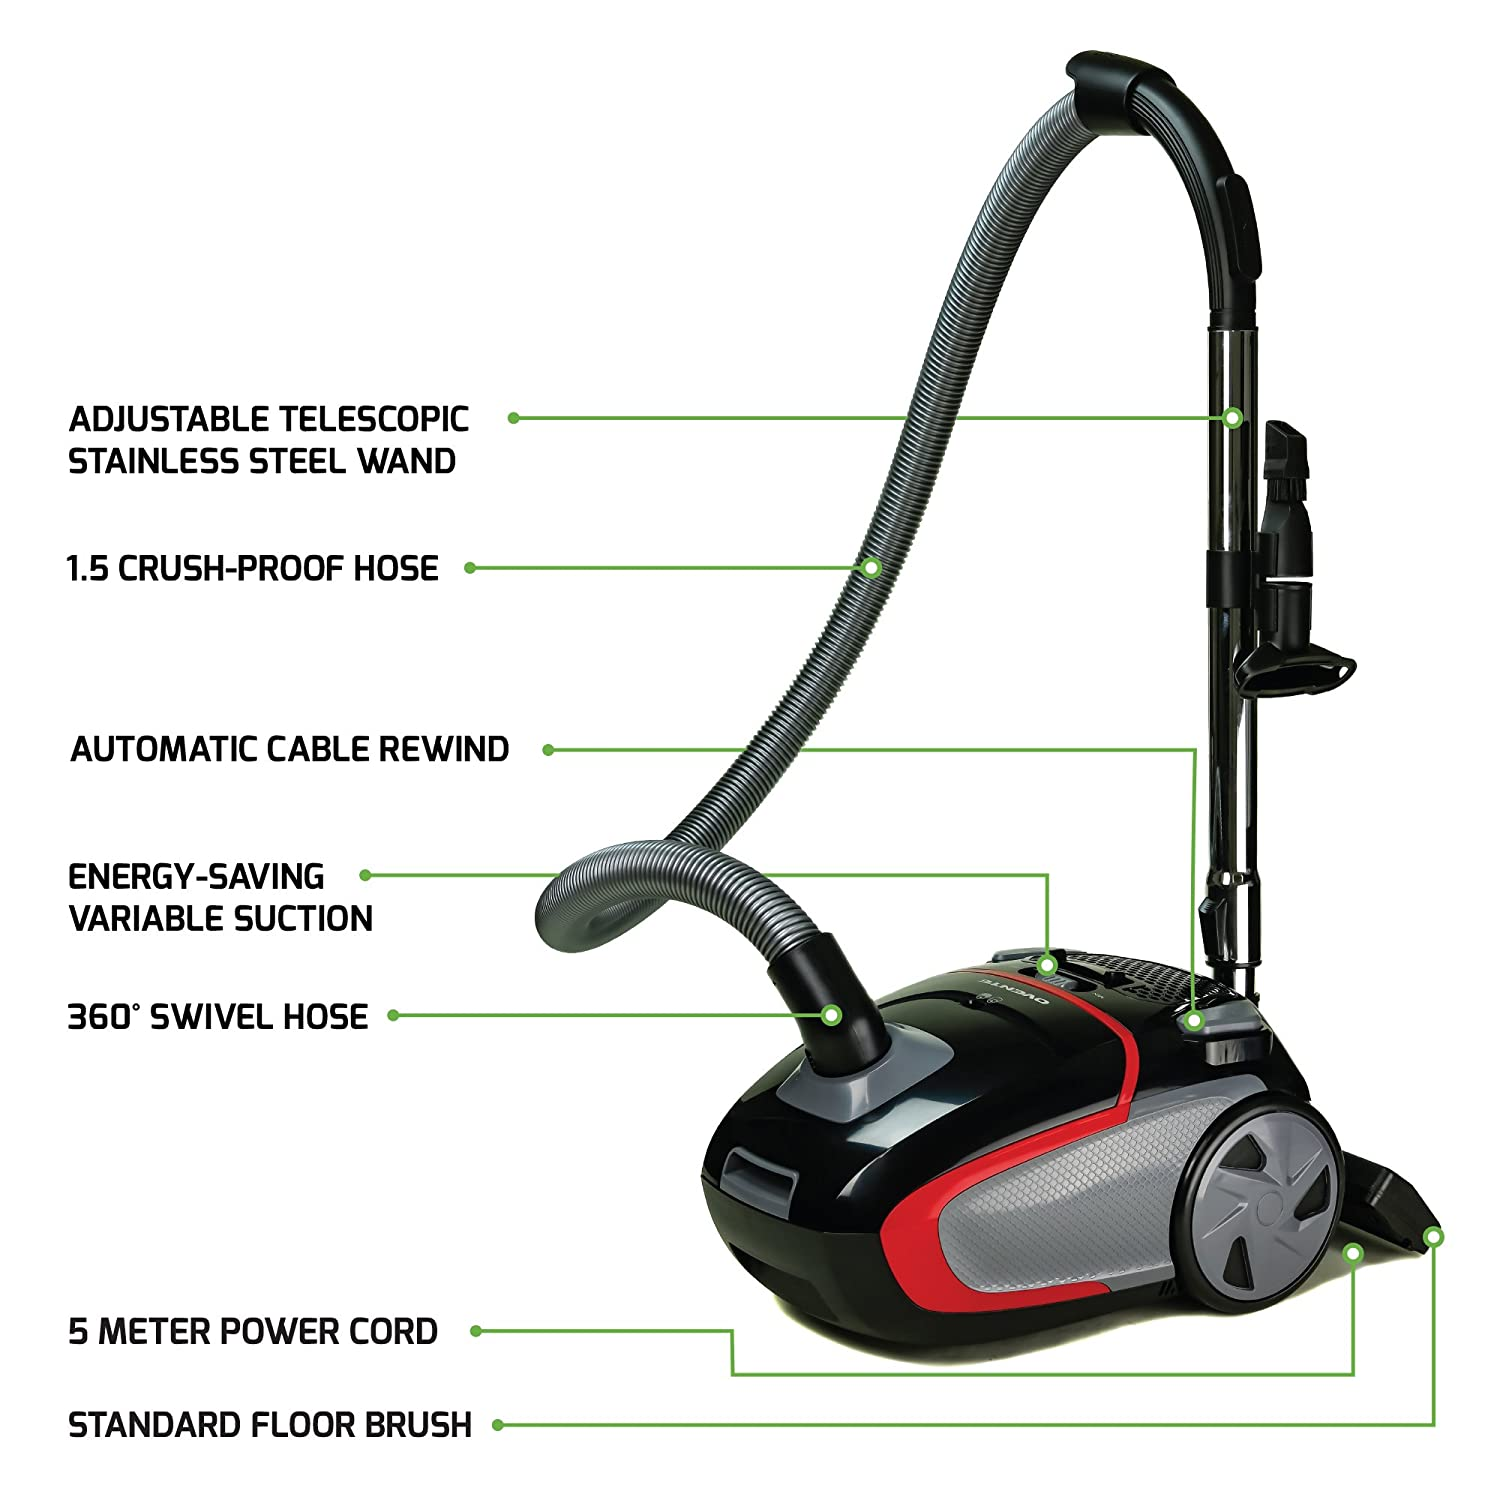 Ovente Electric Vacuum, 3-Stage Filtration with Hepa Filter, Energy-SAVING Speed Control, 1400W, Black ST1600B